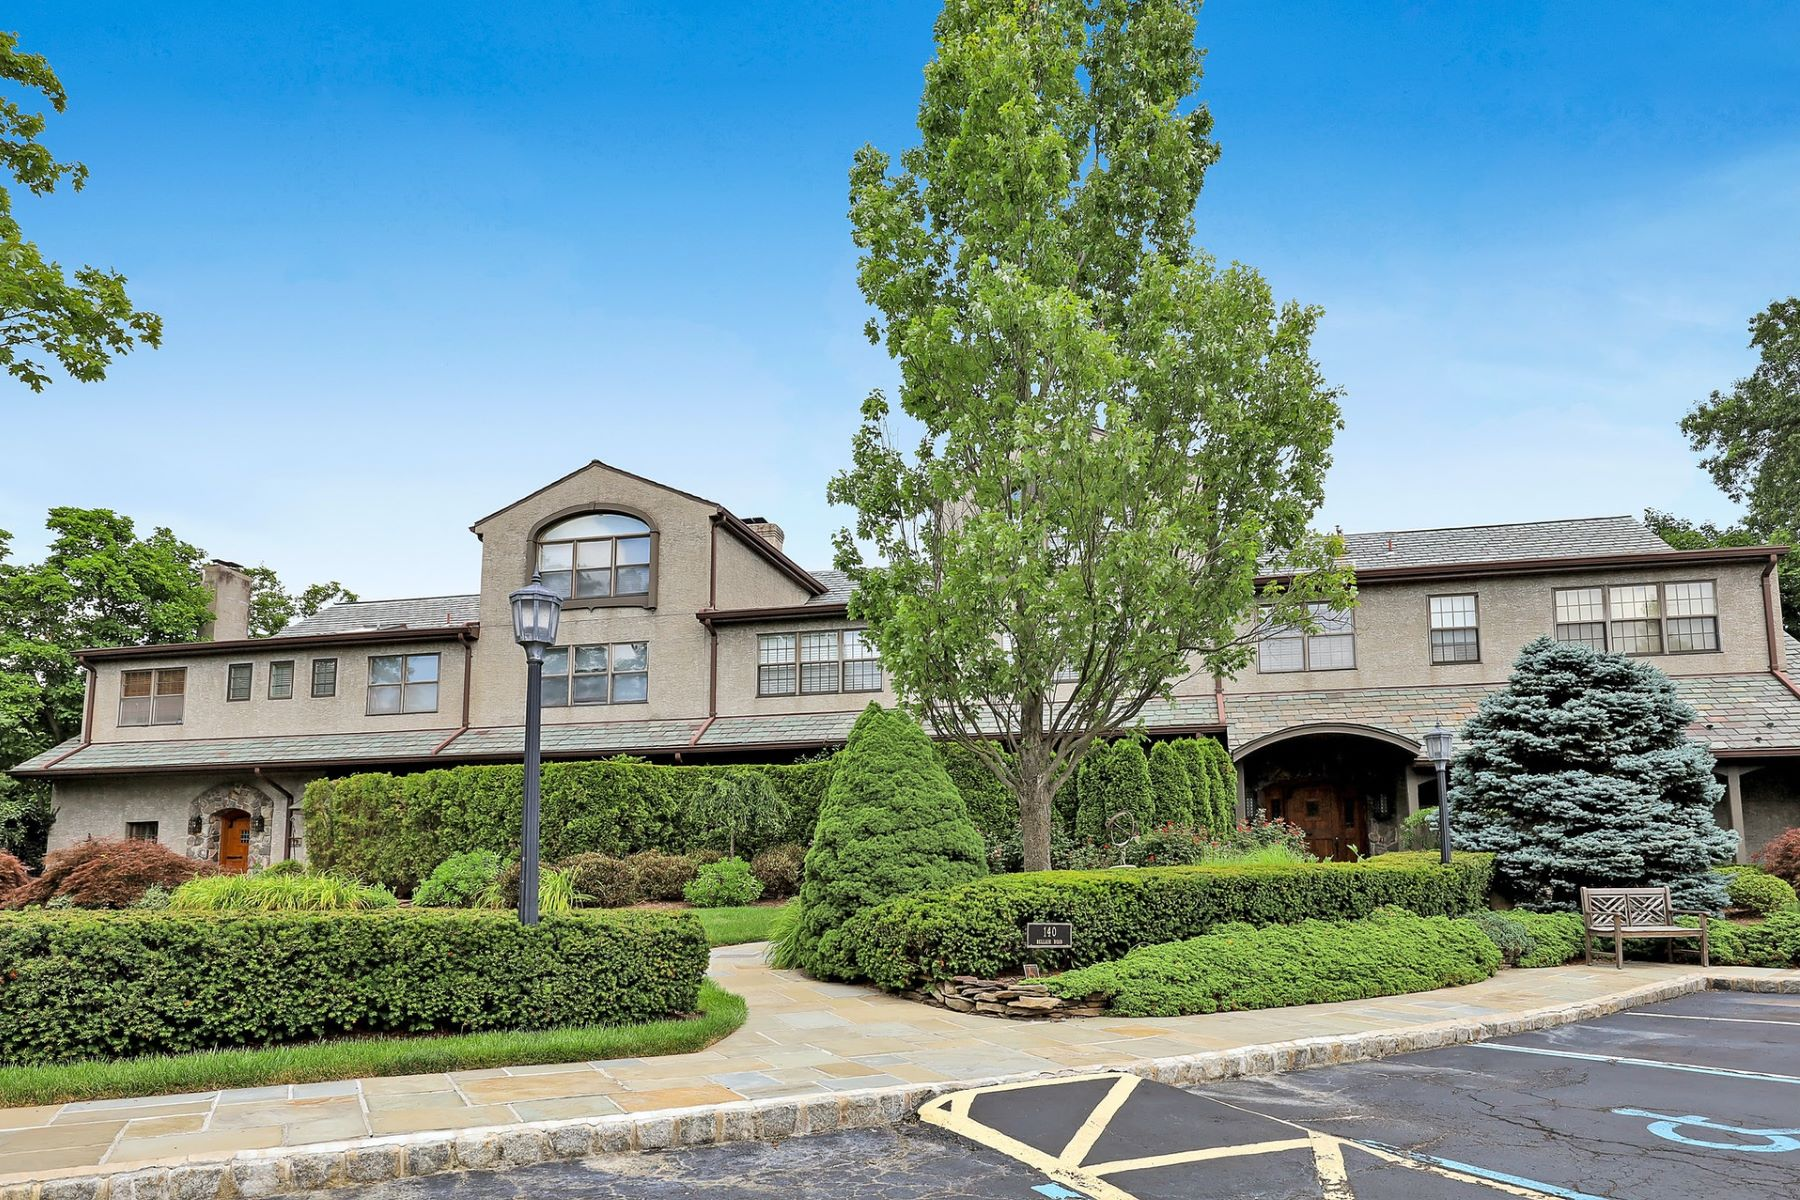 Condominiums for Active at 140 Bellair Rd P Ridgewood, New Jersey 07450 United States